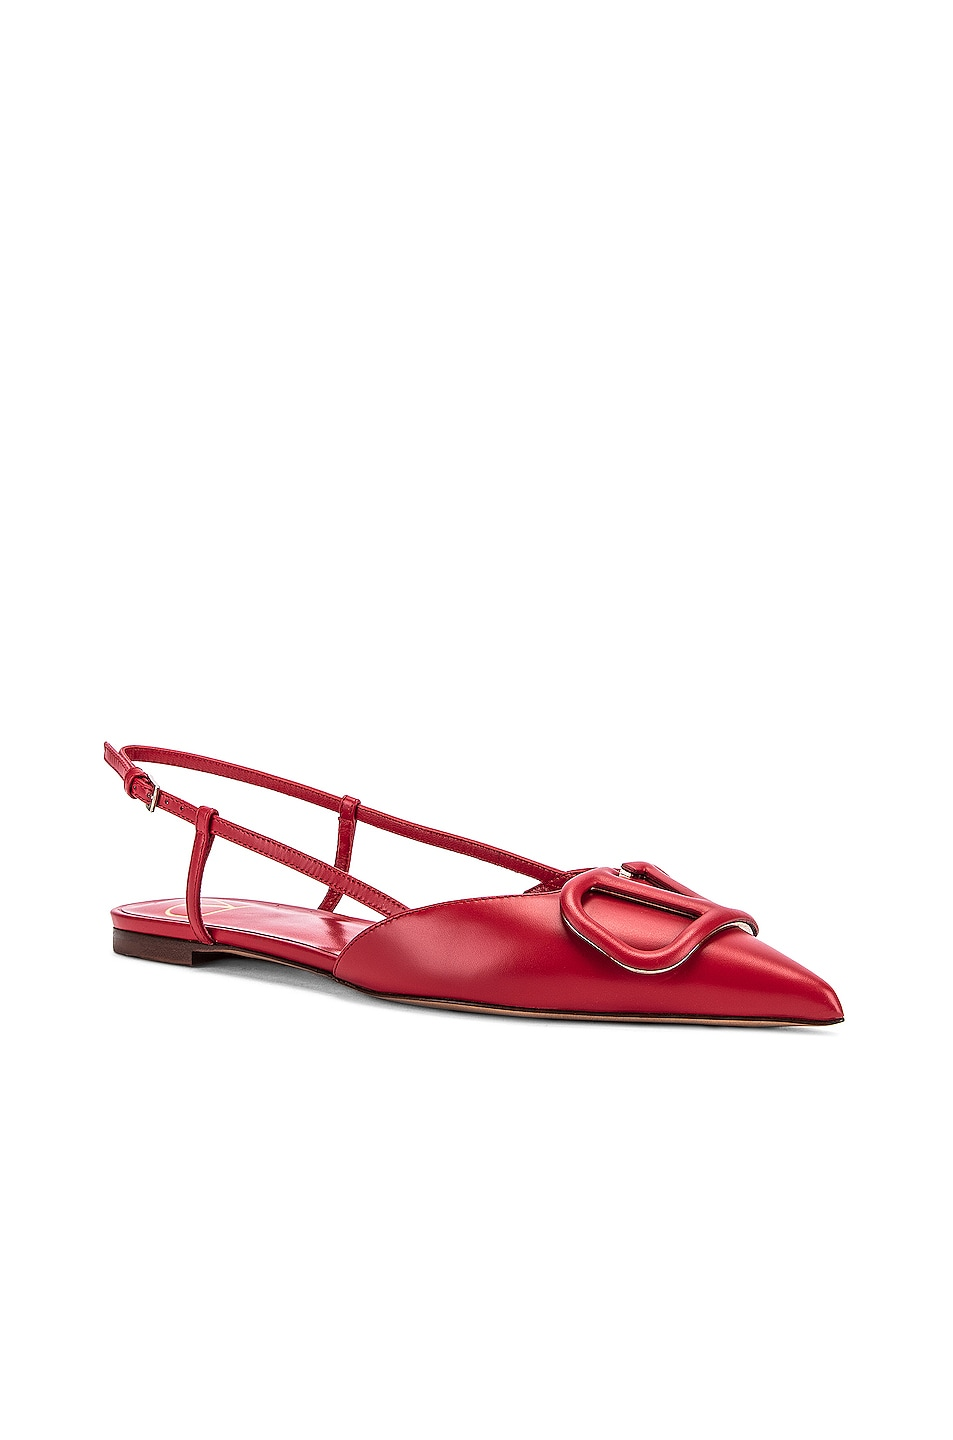 Image 3 of Valentino VLogo Ballerina Flats in Red